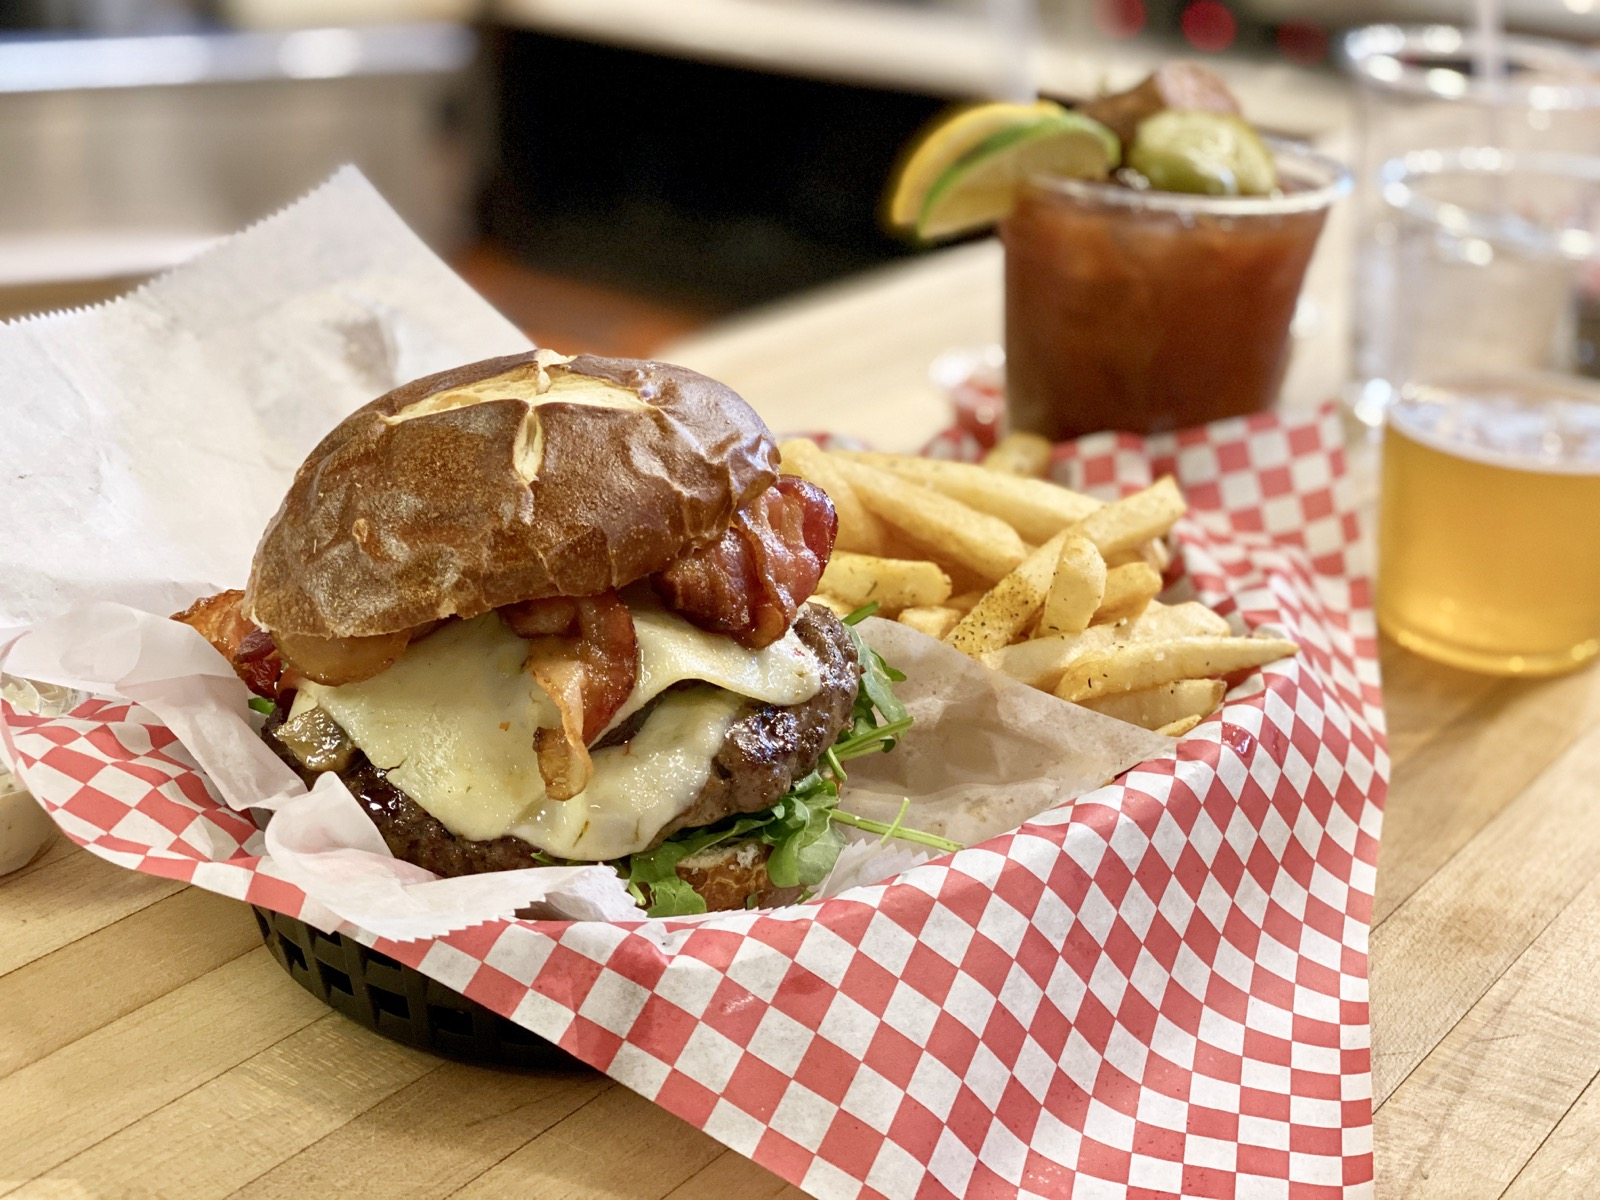 The Bacon Pepper Jack Burger from Foltz Family Market